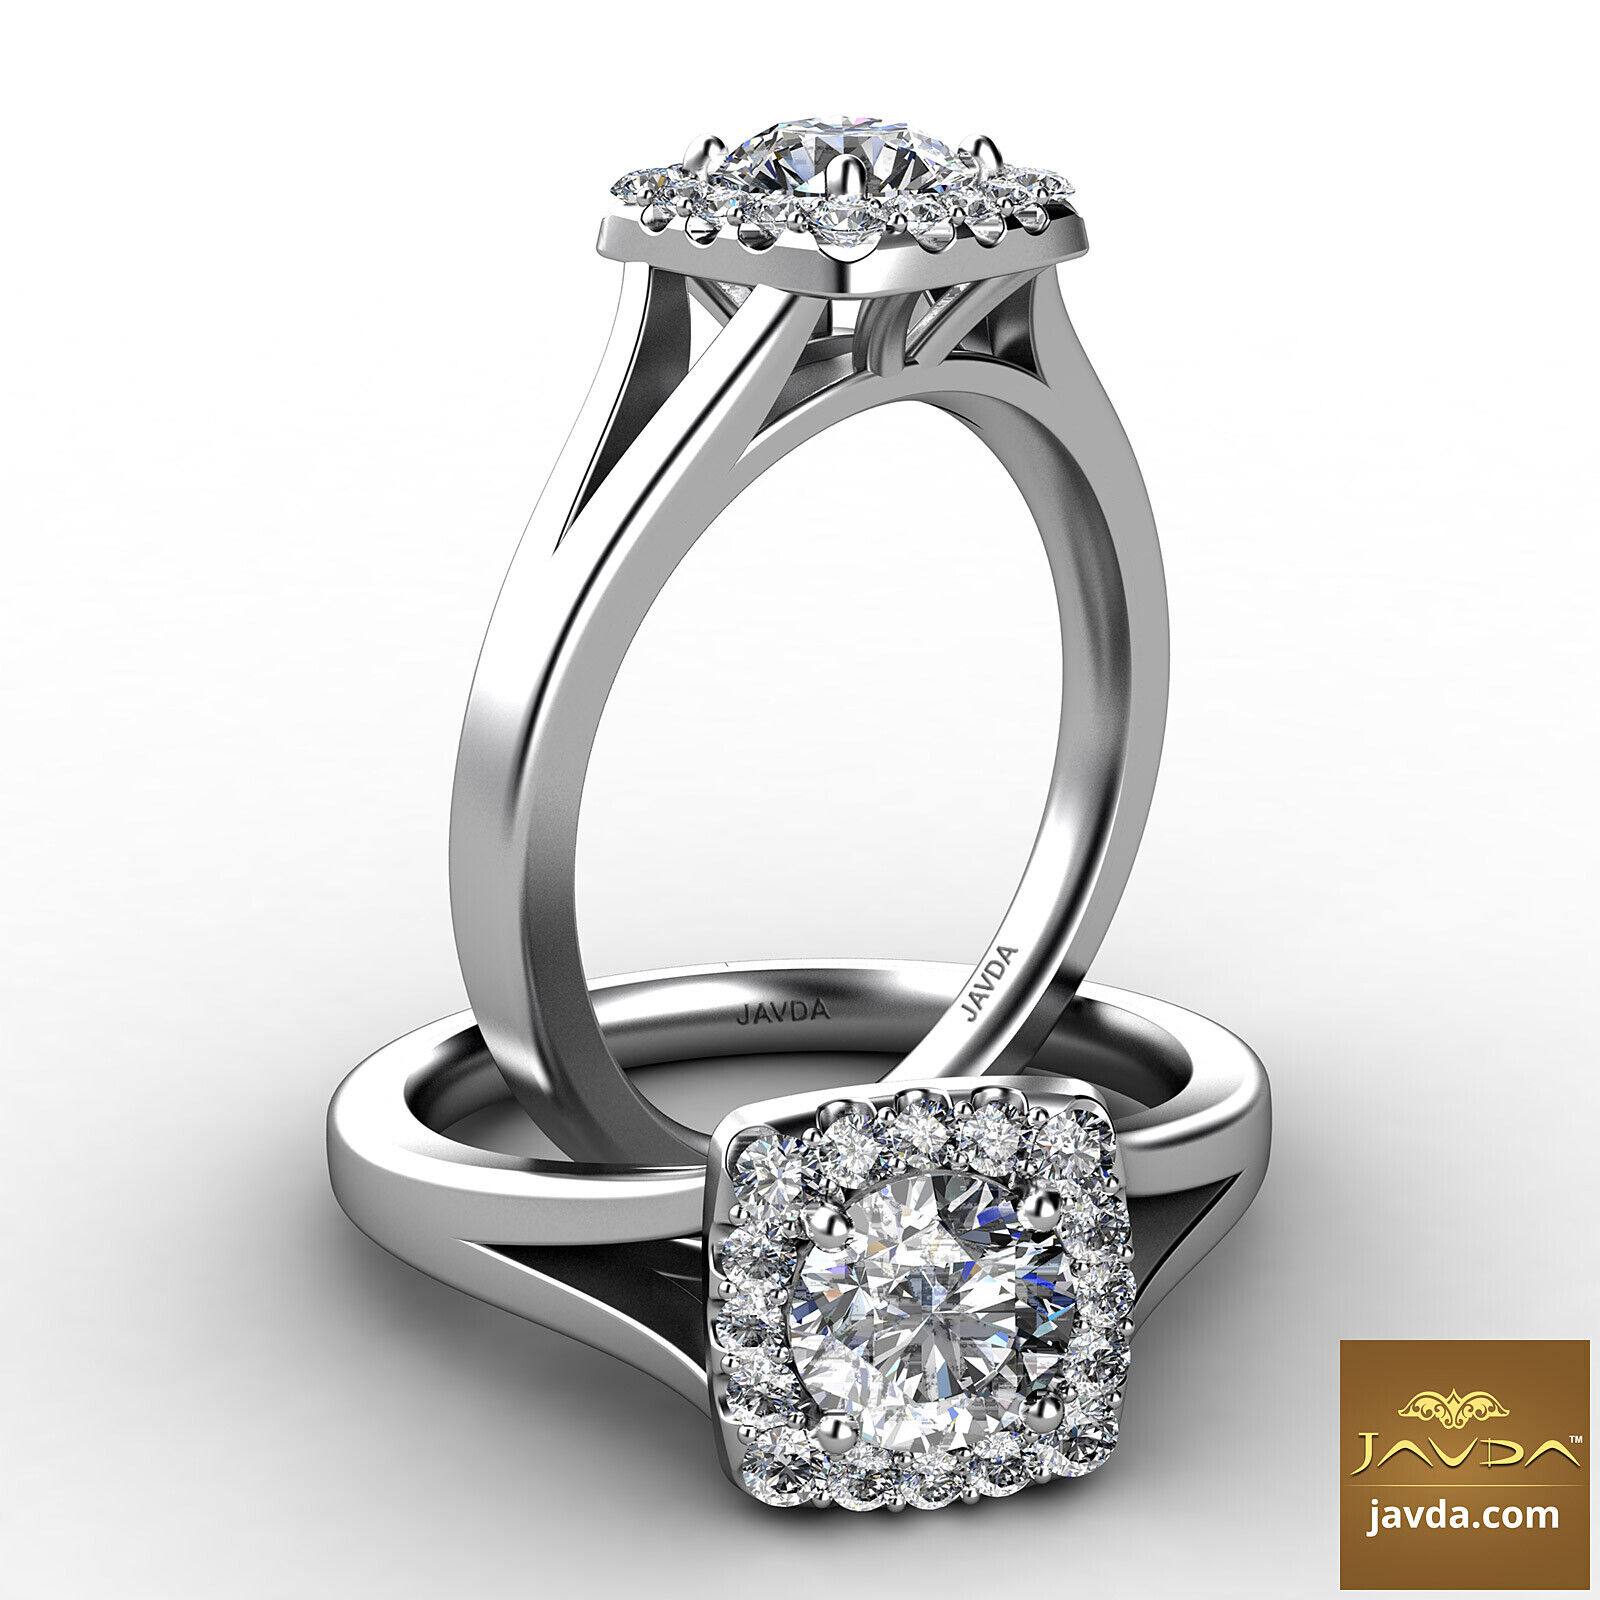 3.2ctw Halo Split Shank Cathedral Round Diamond Engagement Ring GIA I-VS1 W Gold